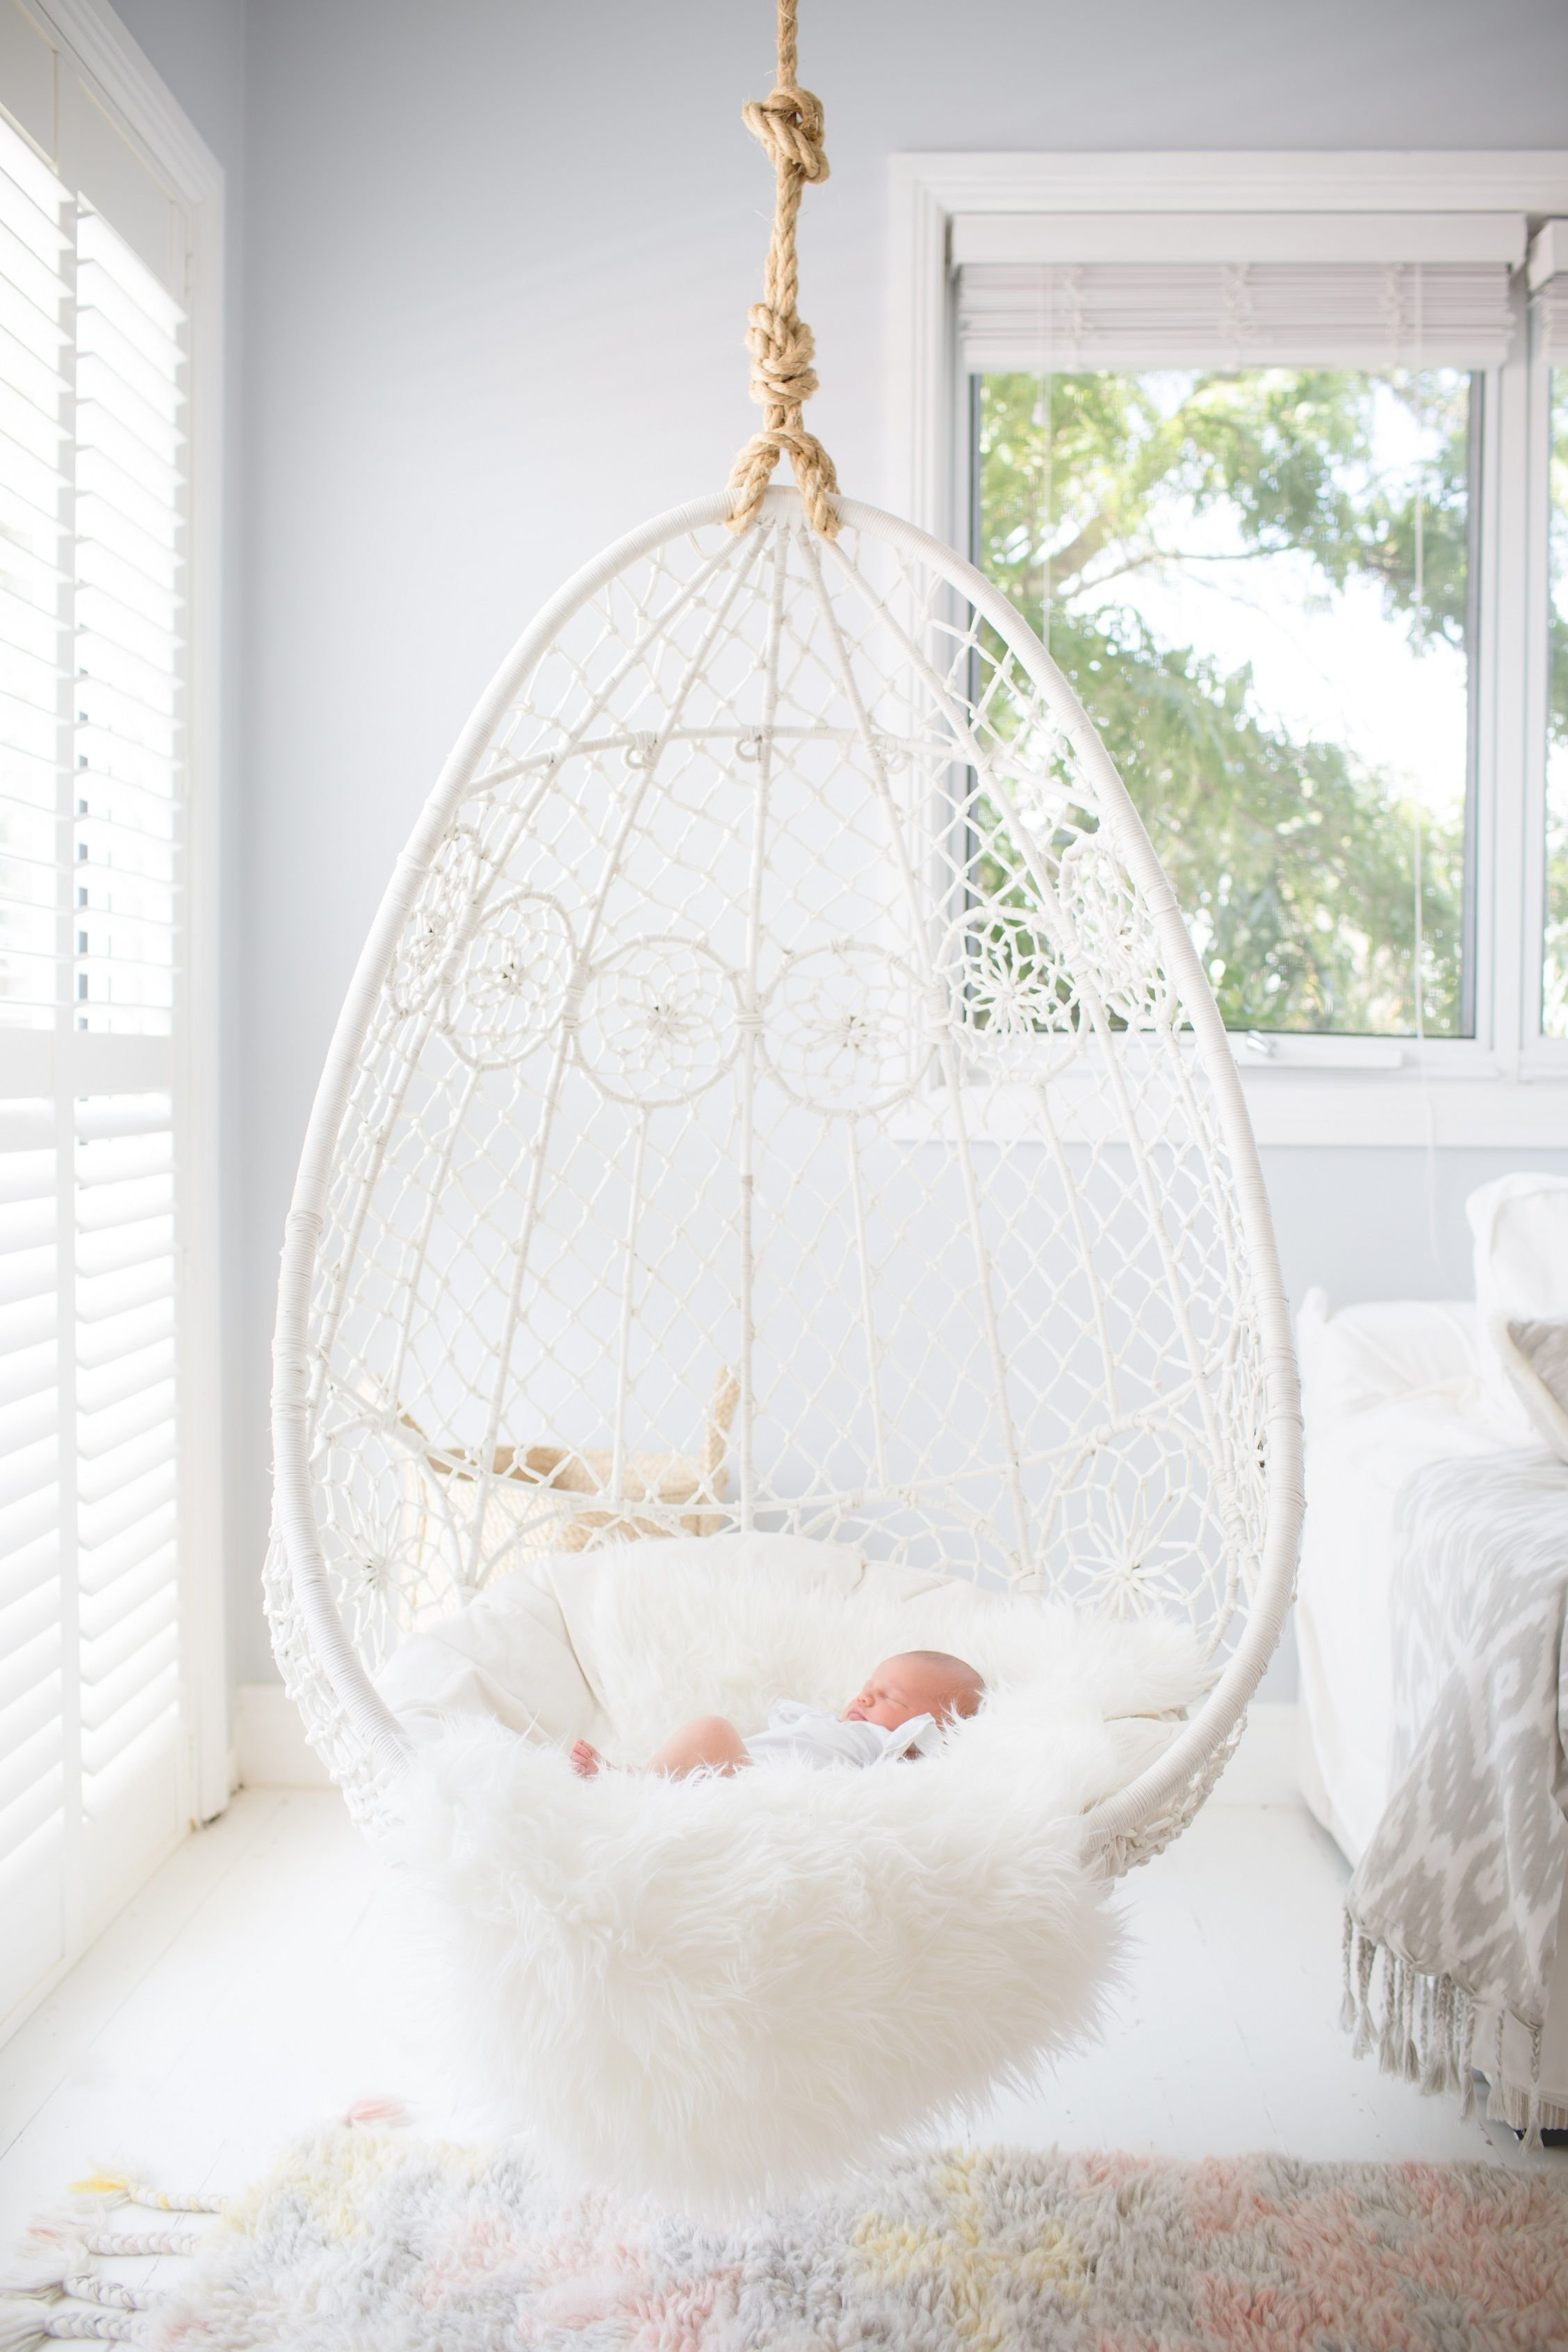 Best Macrame Swing Chair Best Of Bedroom Cool Hanging Swing Chair Indoor Macrame Hanging Chair For With Pictures